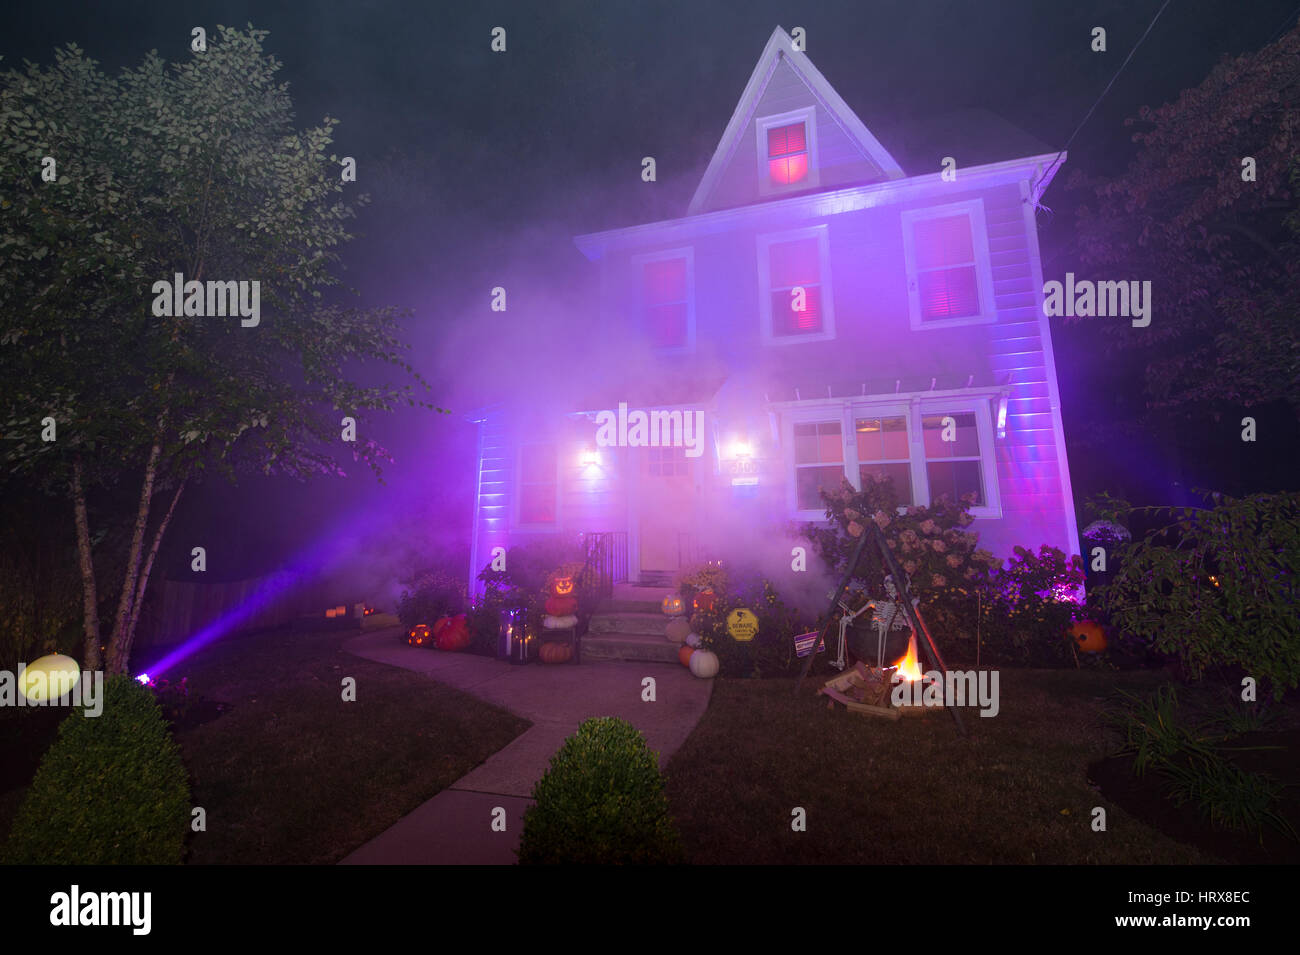 Casas Decoradas De Halloween Casa Decorada Para Halloween Foto Imagen De Stock 135187092 Alamy